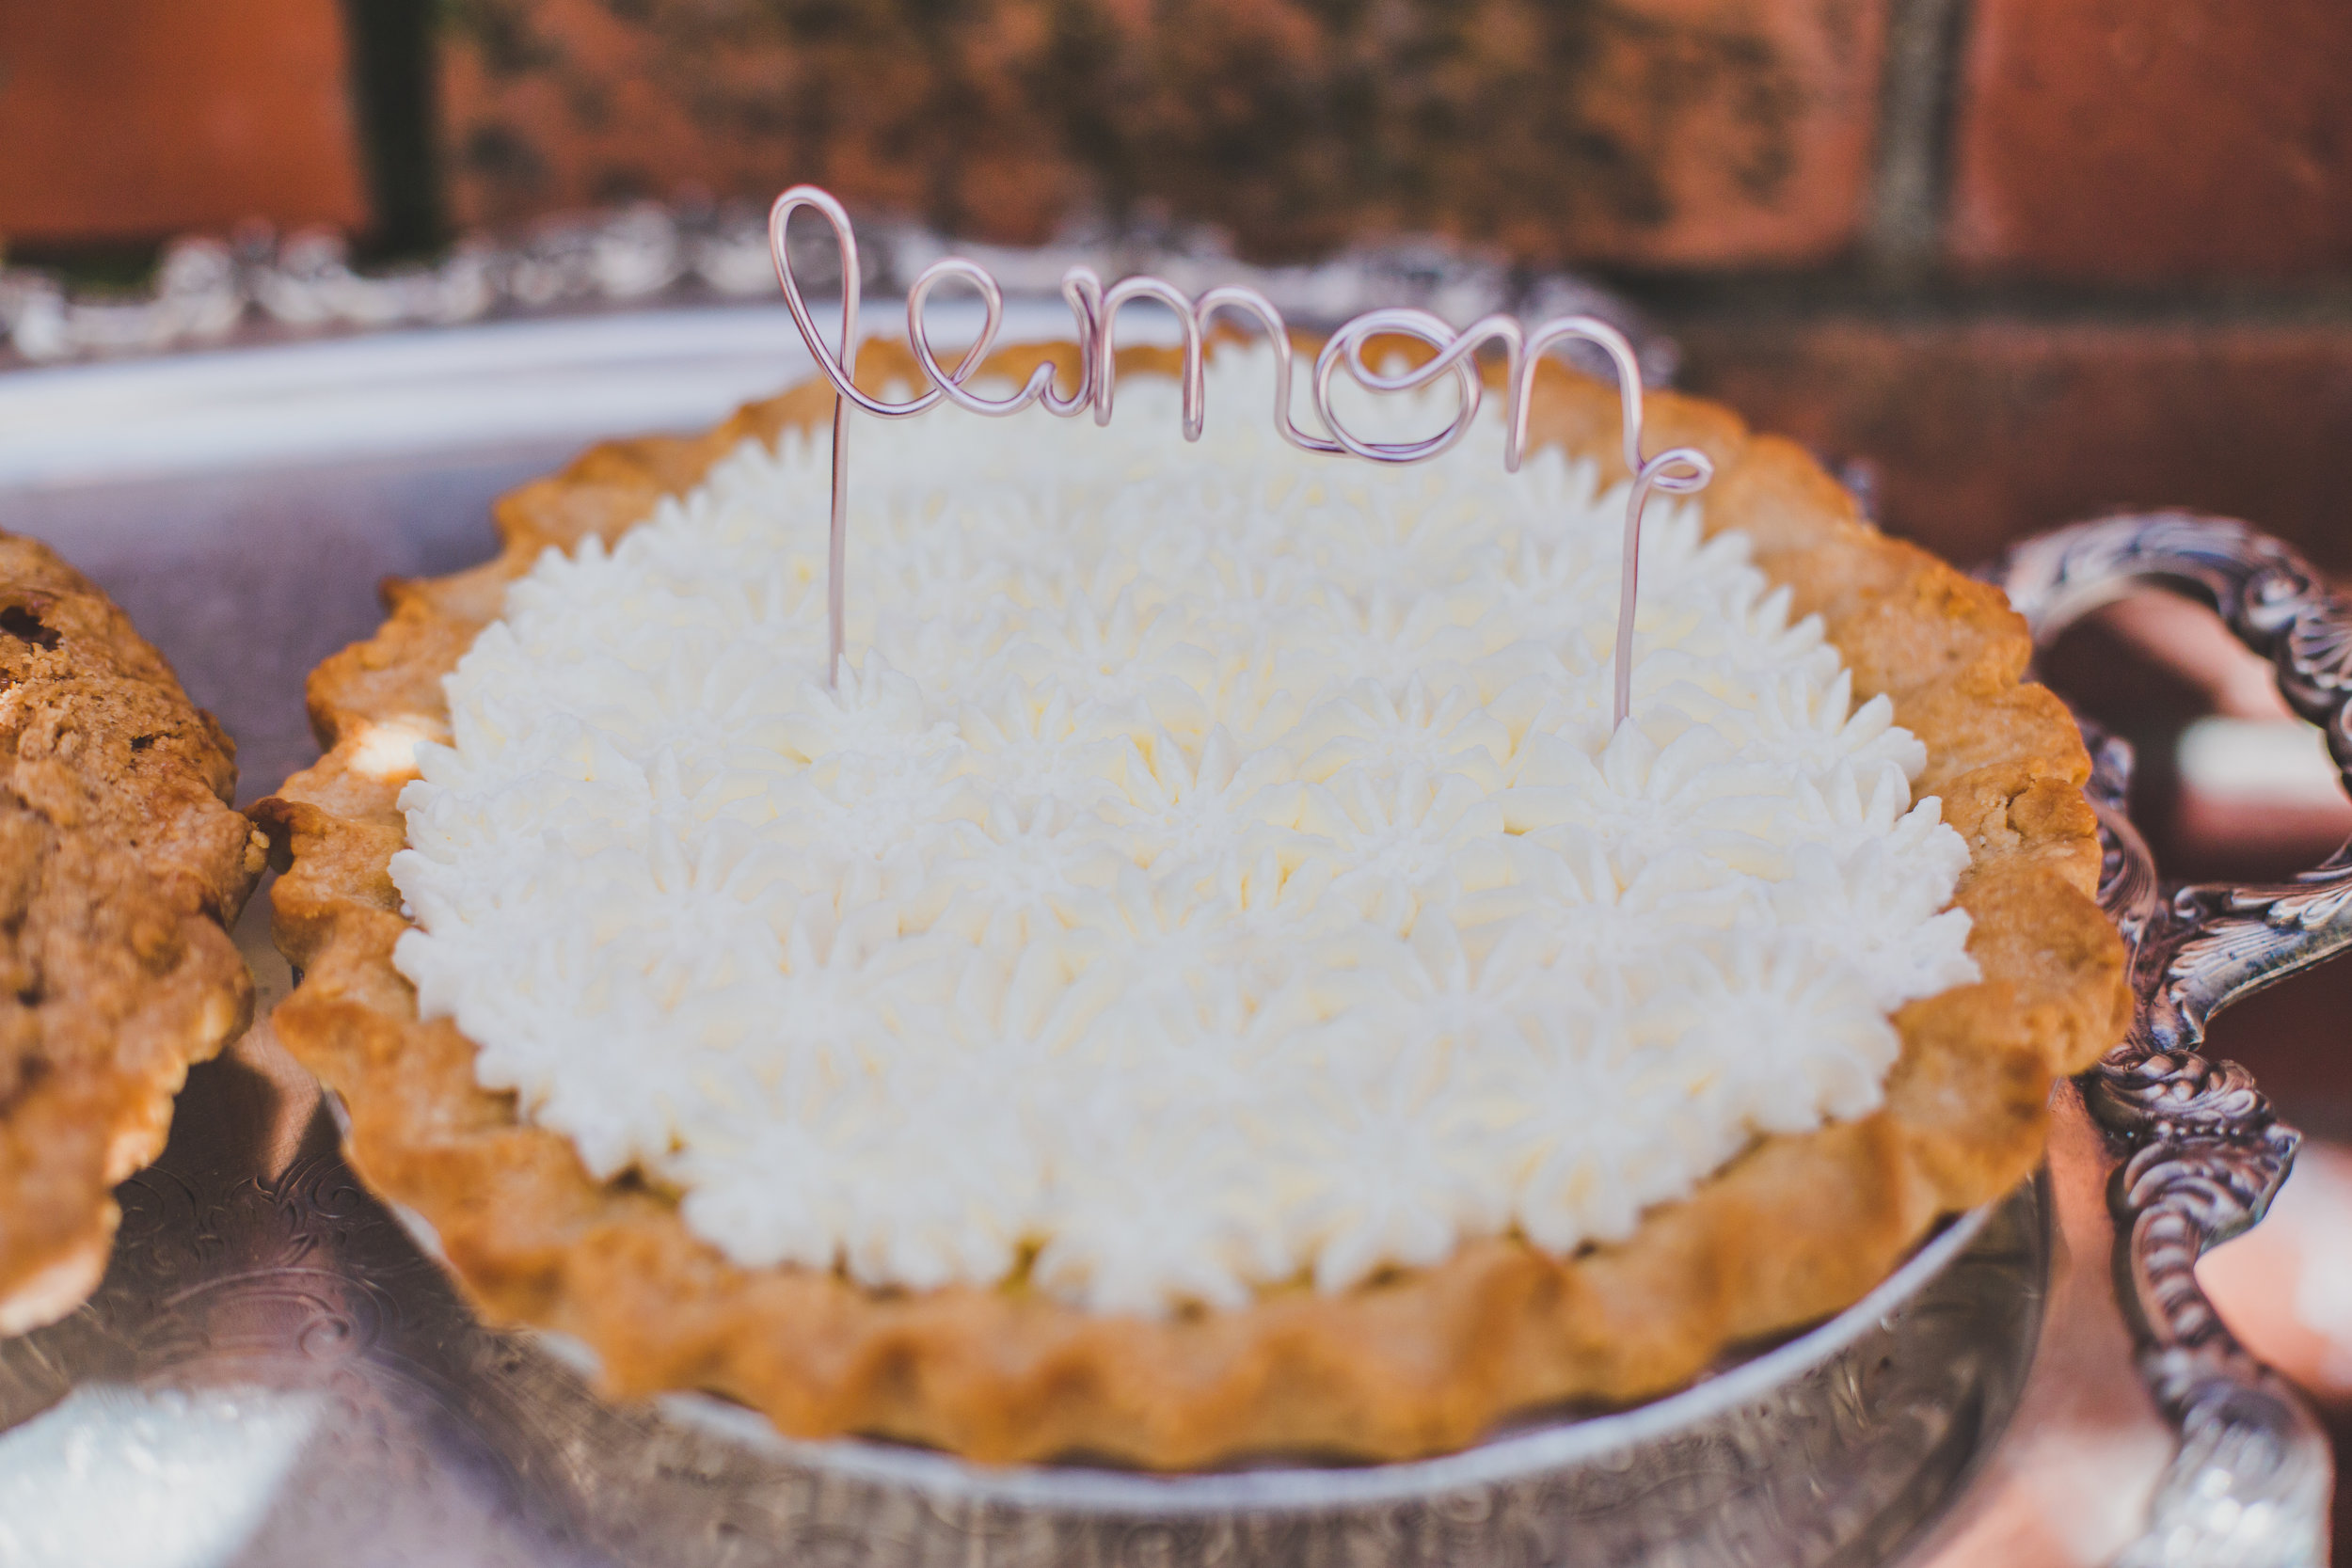 Vintage Pie Bar - First Birthday Cake Topper - A Vintage Chic Pi Day Themed 1st Birthday Party